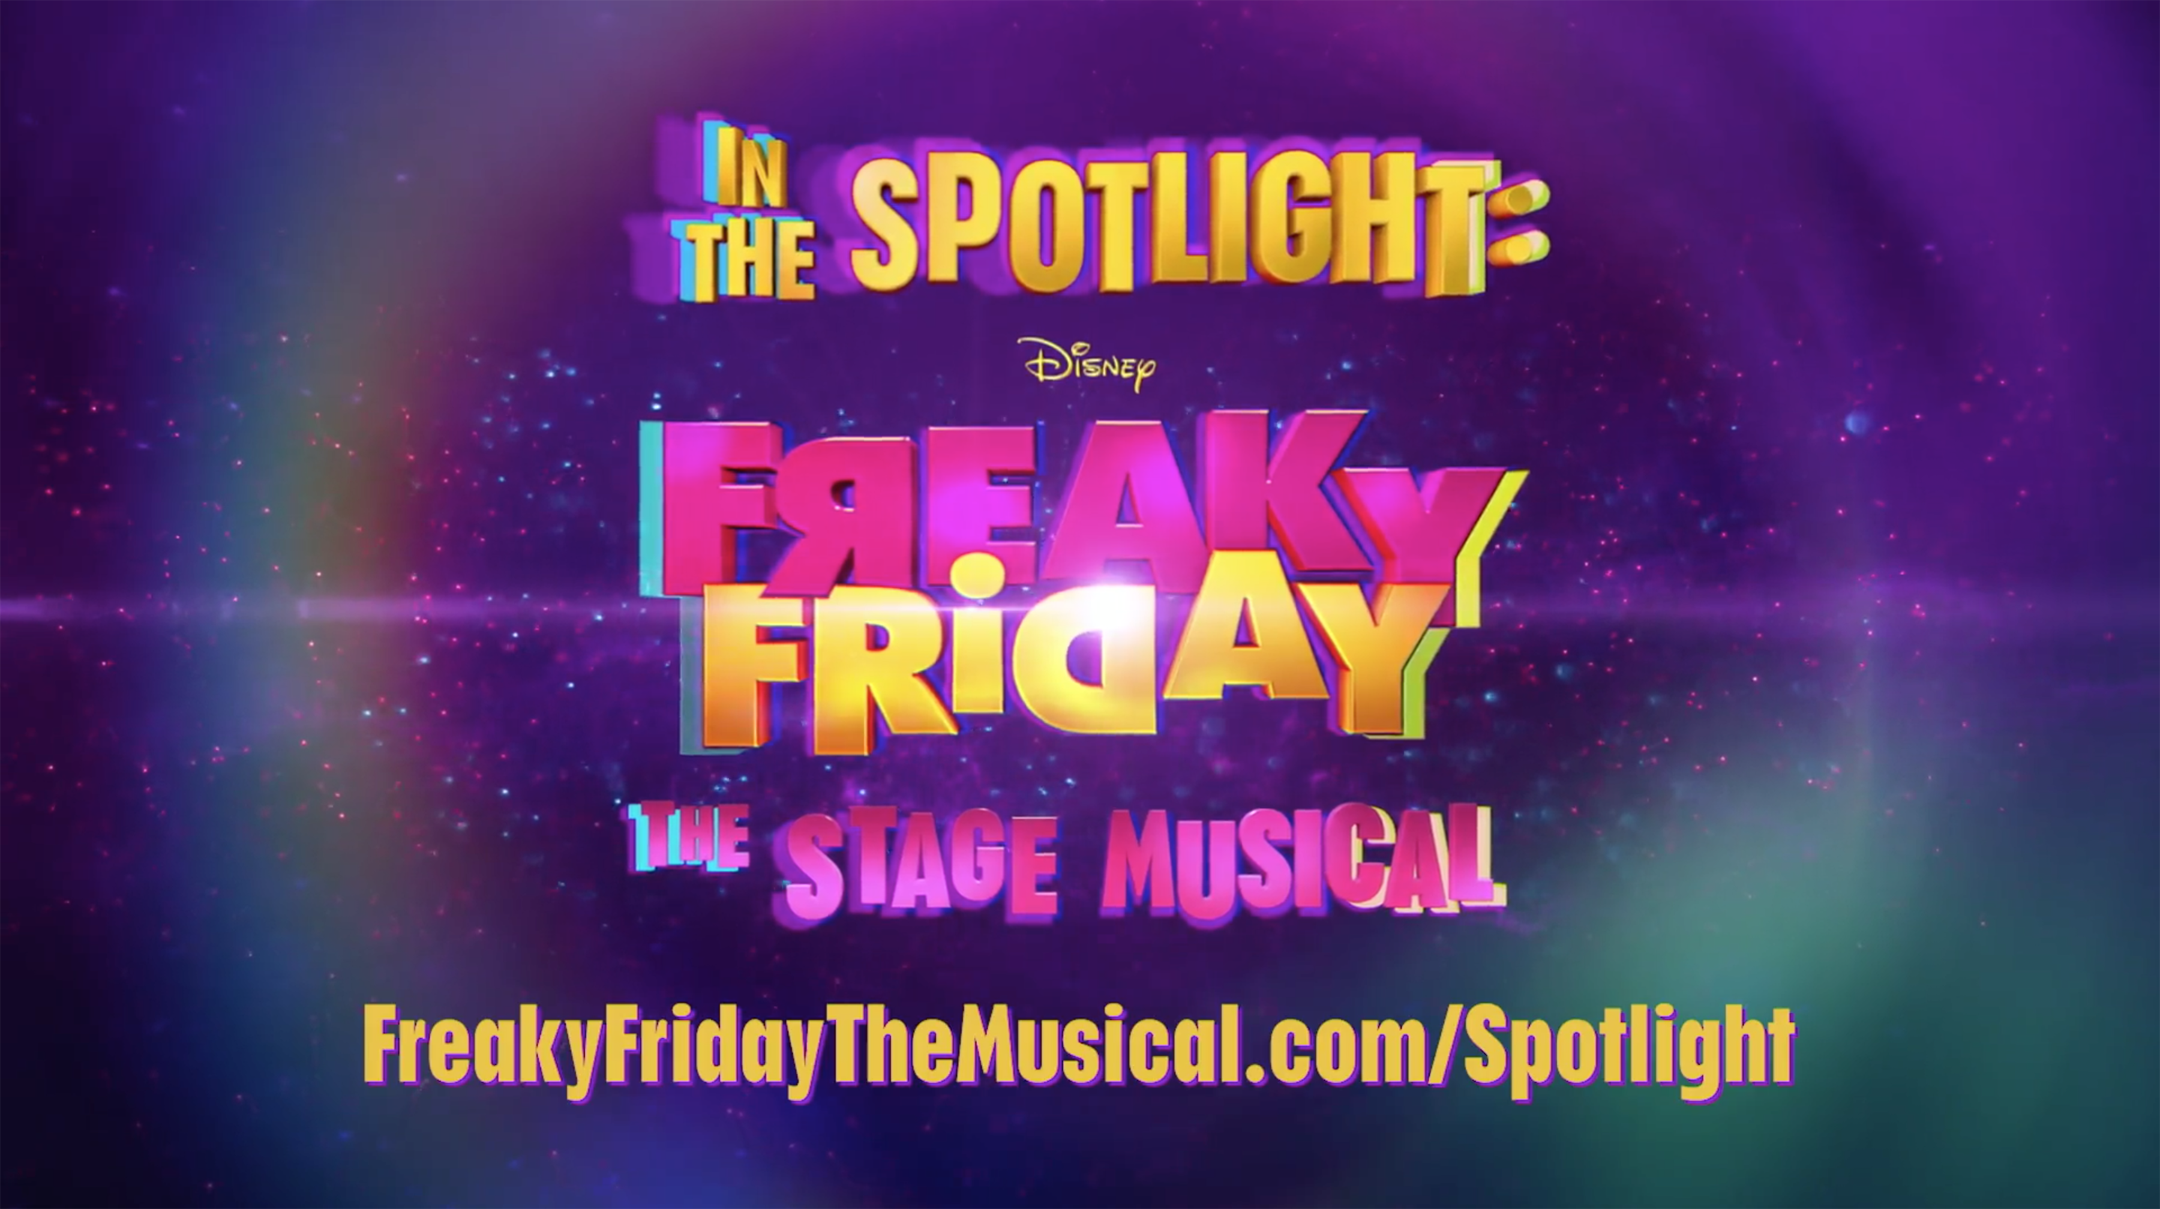 In The Spotlight: Disney FREAKY FRIDAY The Stage Musical